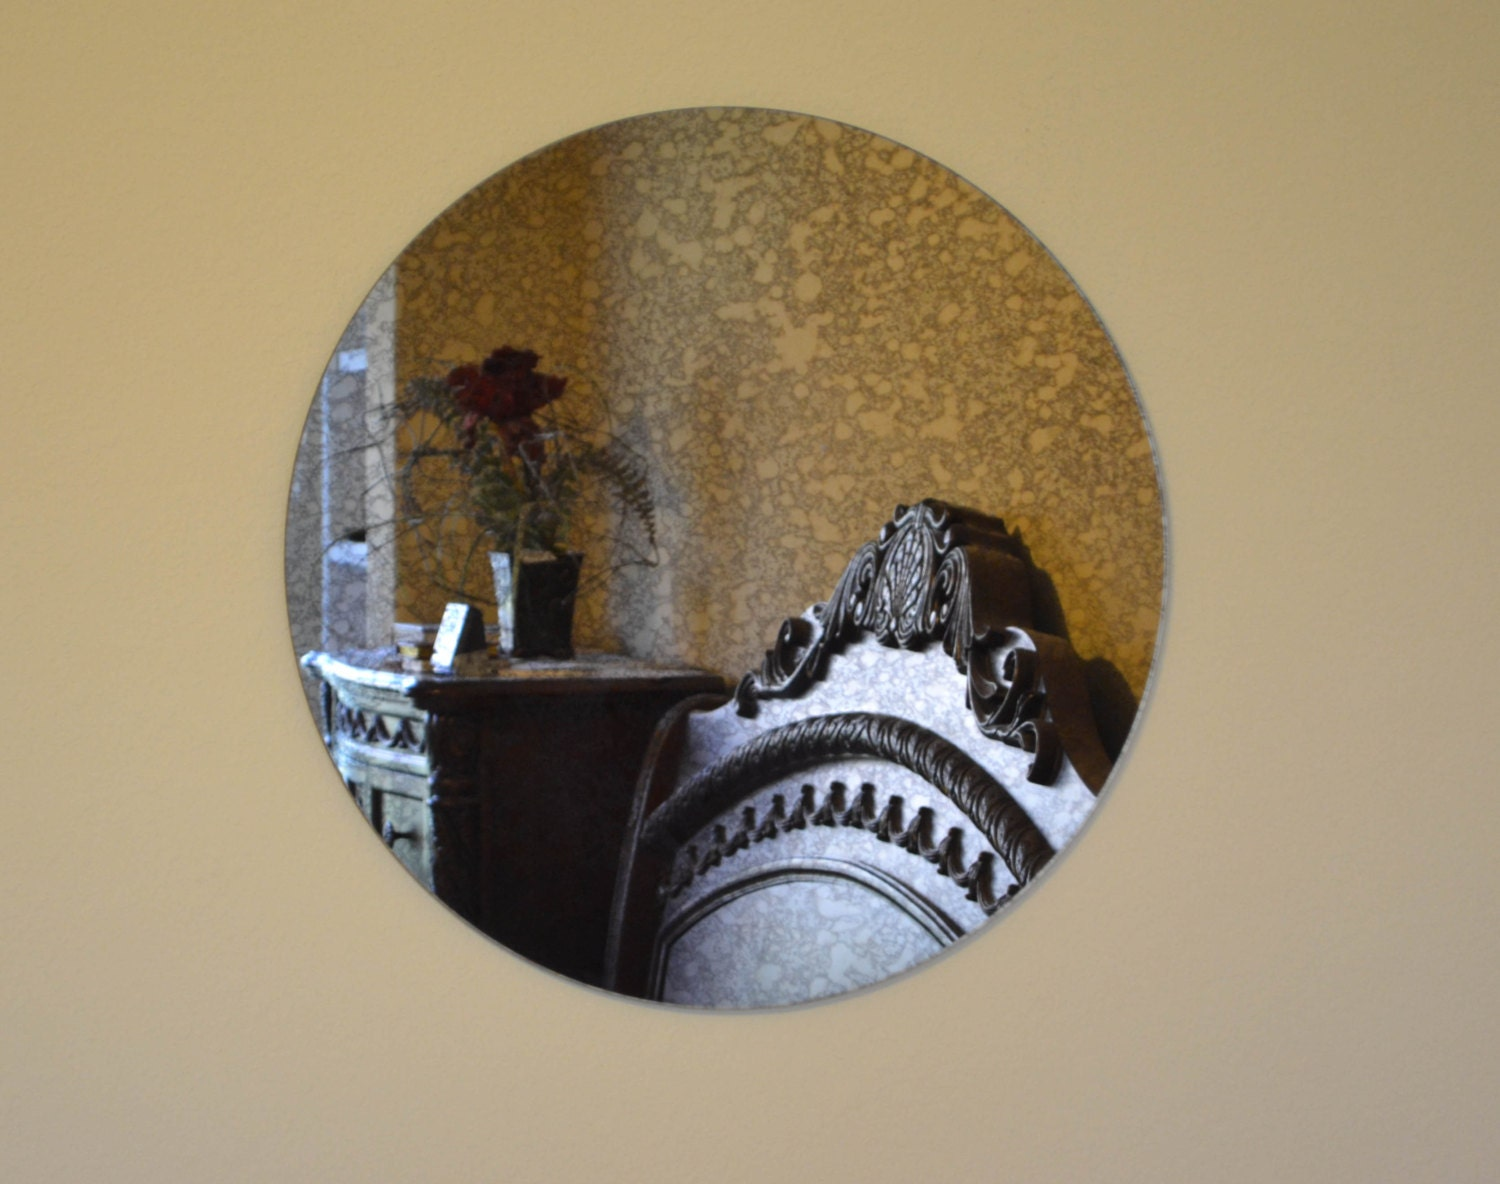 Overstock Antique Itched Decorative Round Wall Mirror